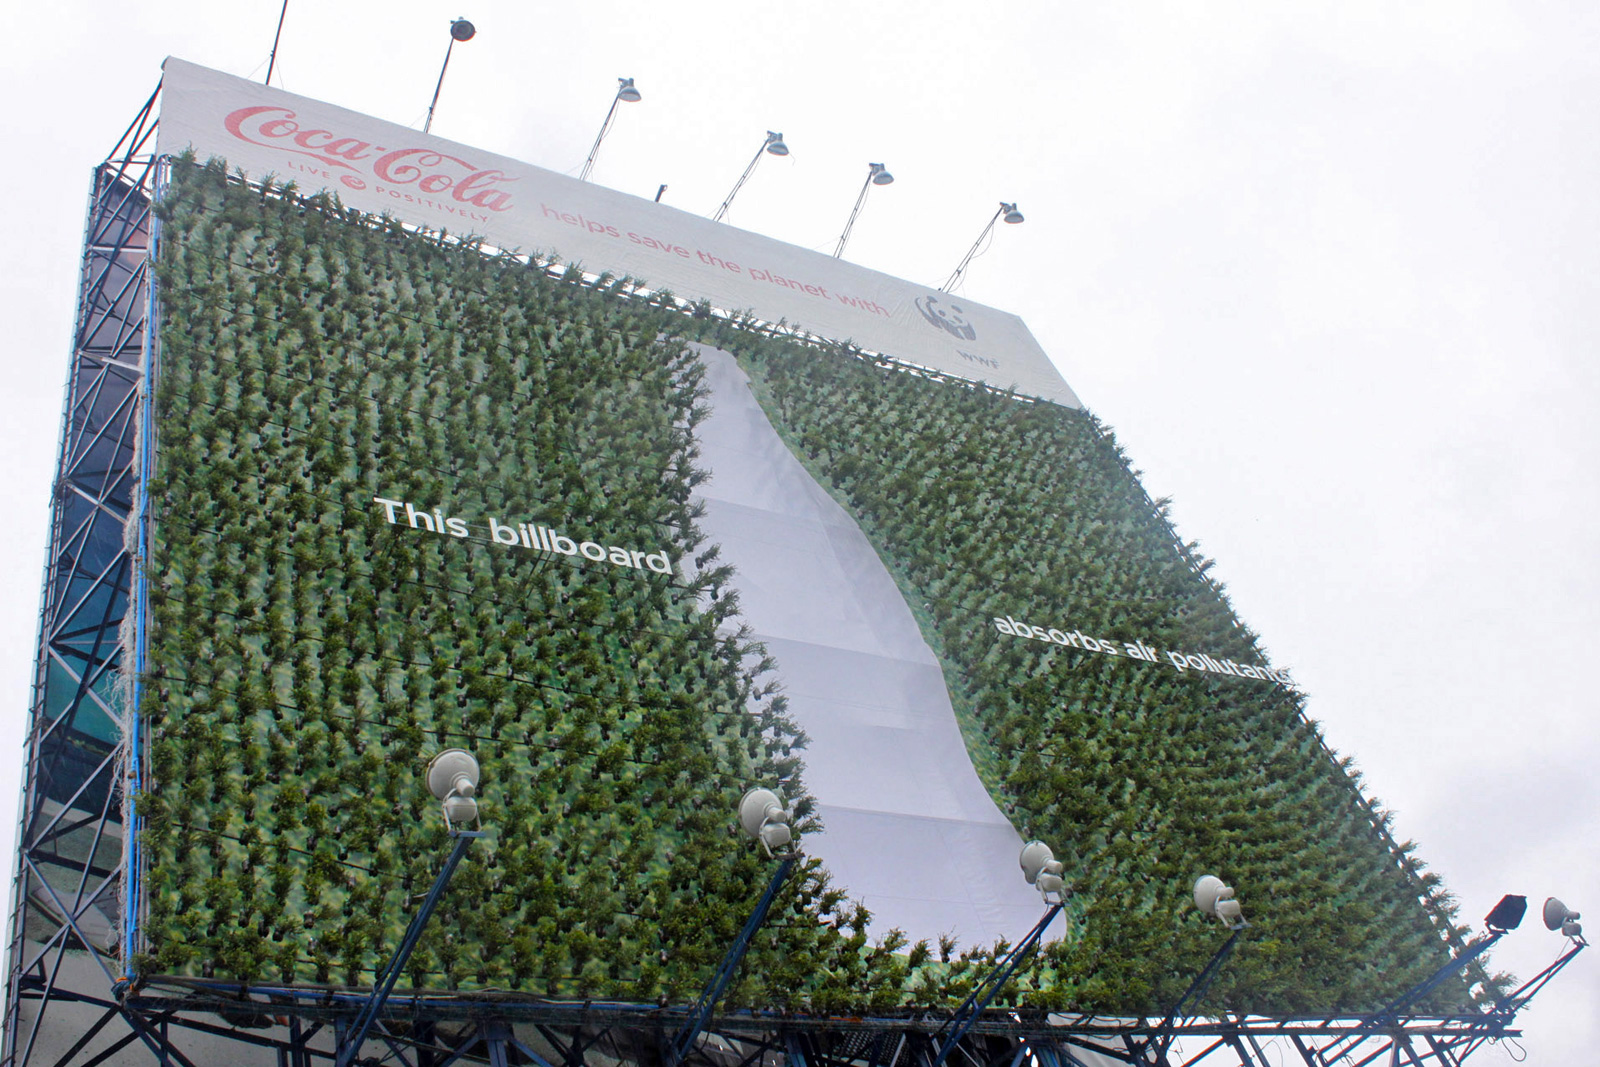 coke wwf plant billboard1 20+ Environmental Awareness Advertising Campaigns